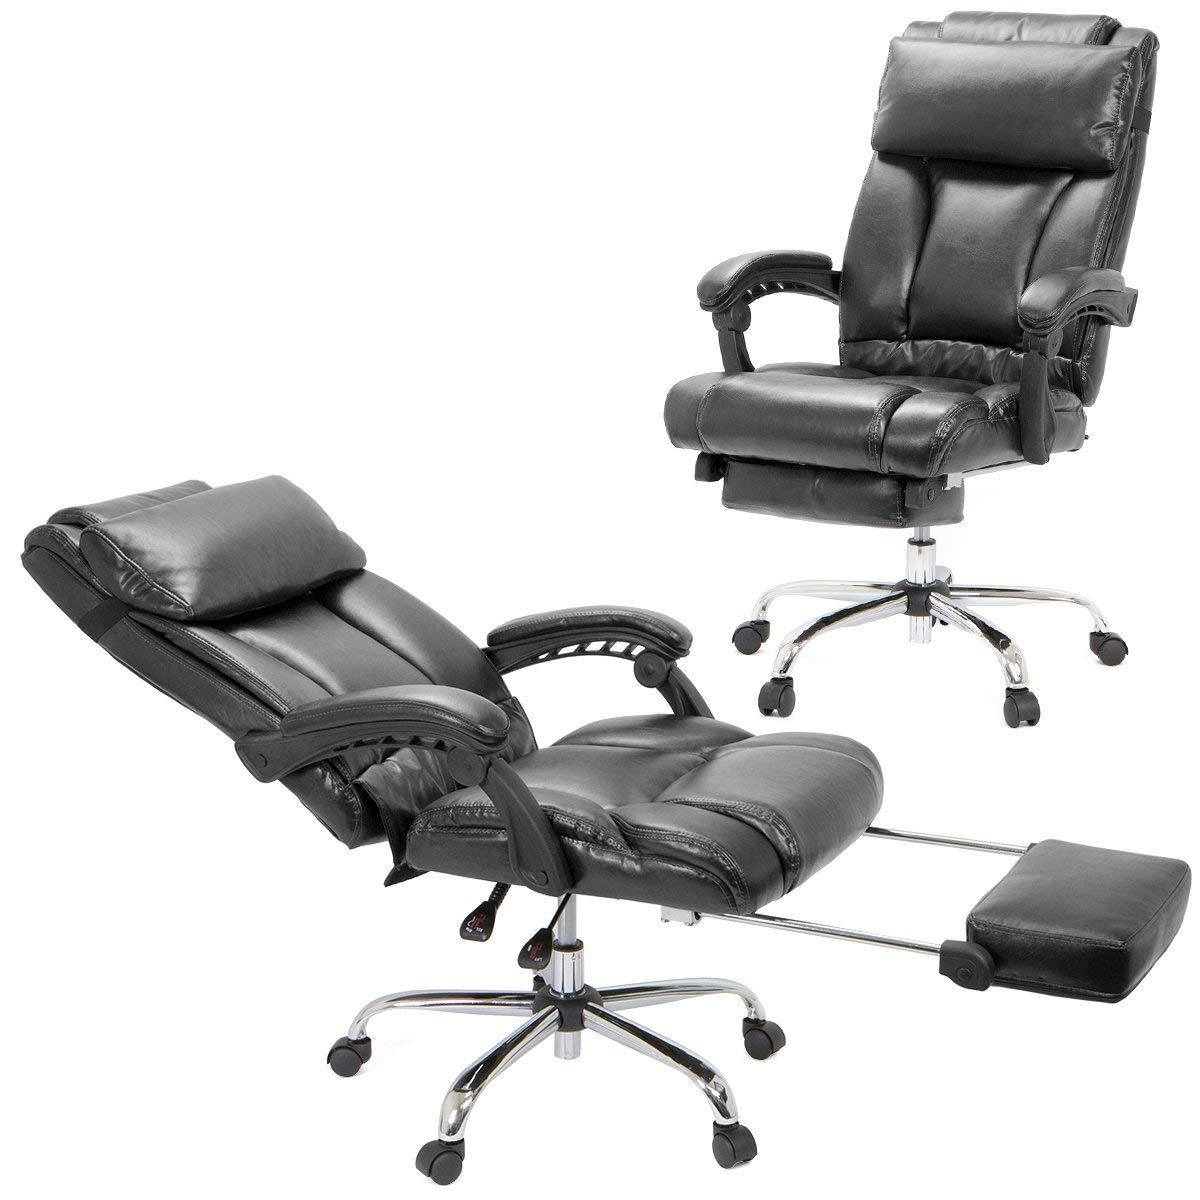 Barton High Back Office Chair With Extend Footrest Pad Black